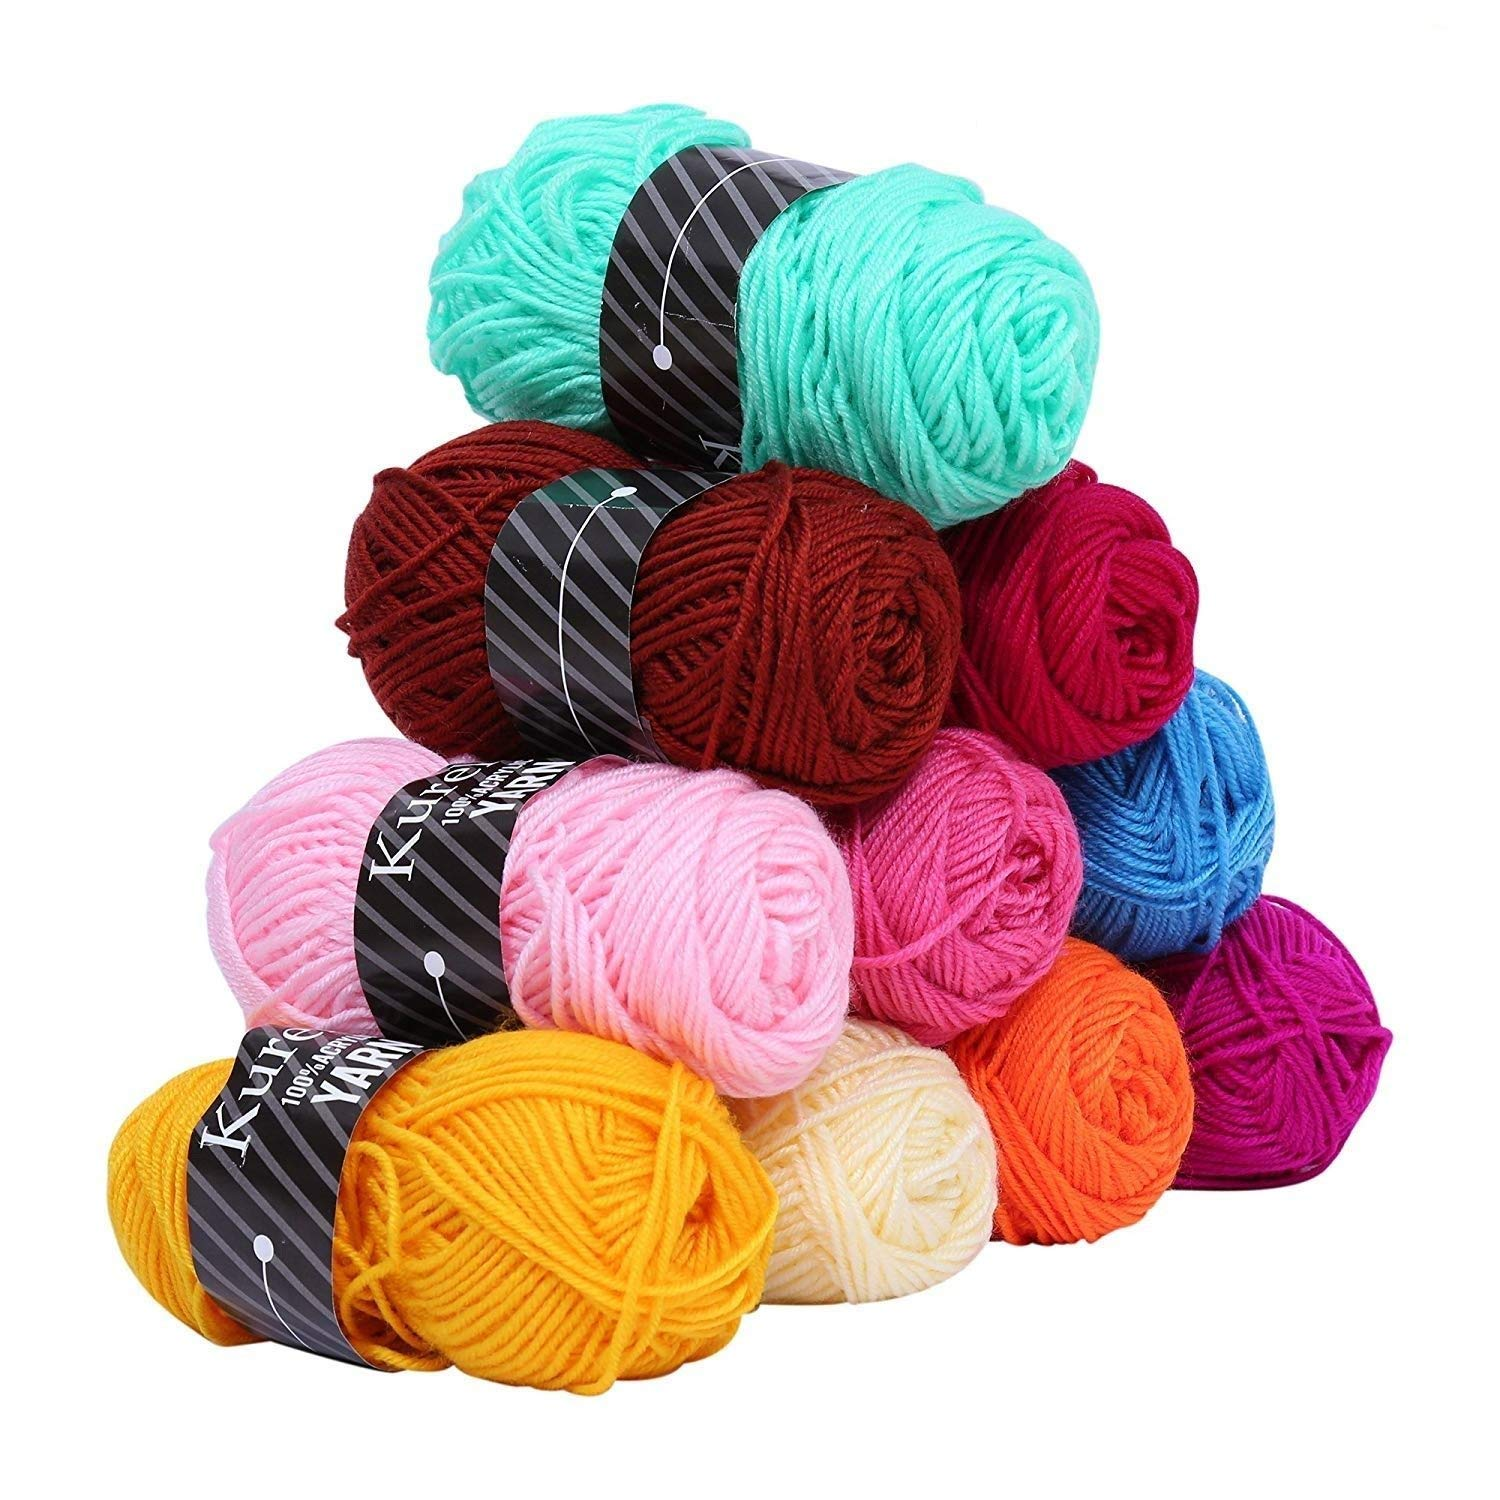 Acrylic Yarn Knitting Wool Set - Assorted Colors - Pack of 10 X 50gm Bundles Kurelle